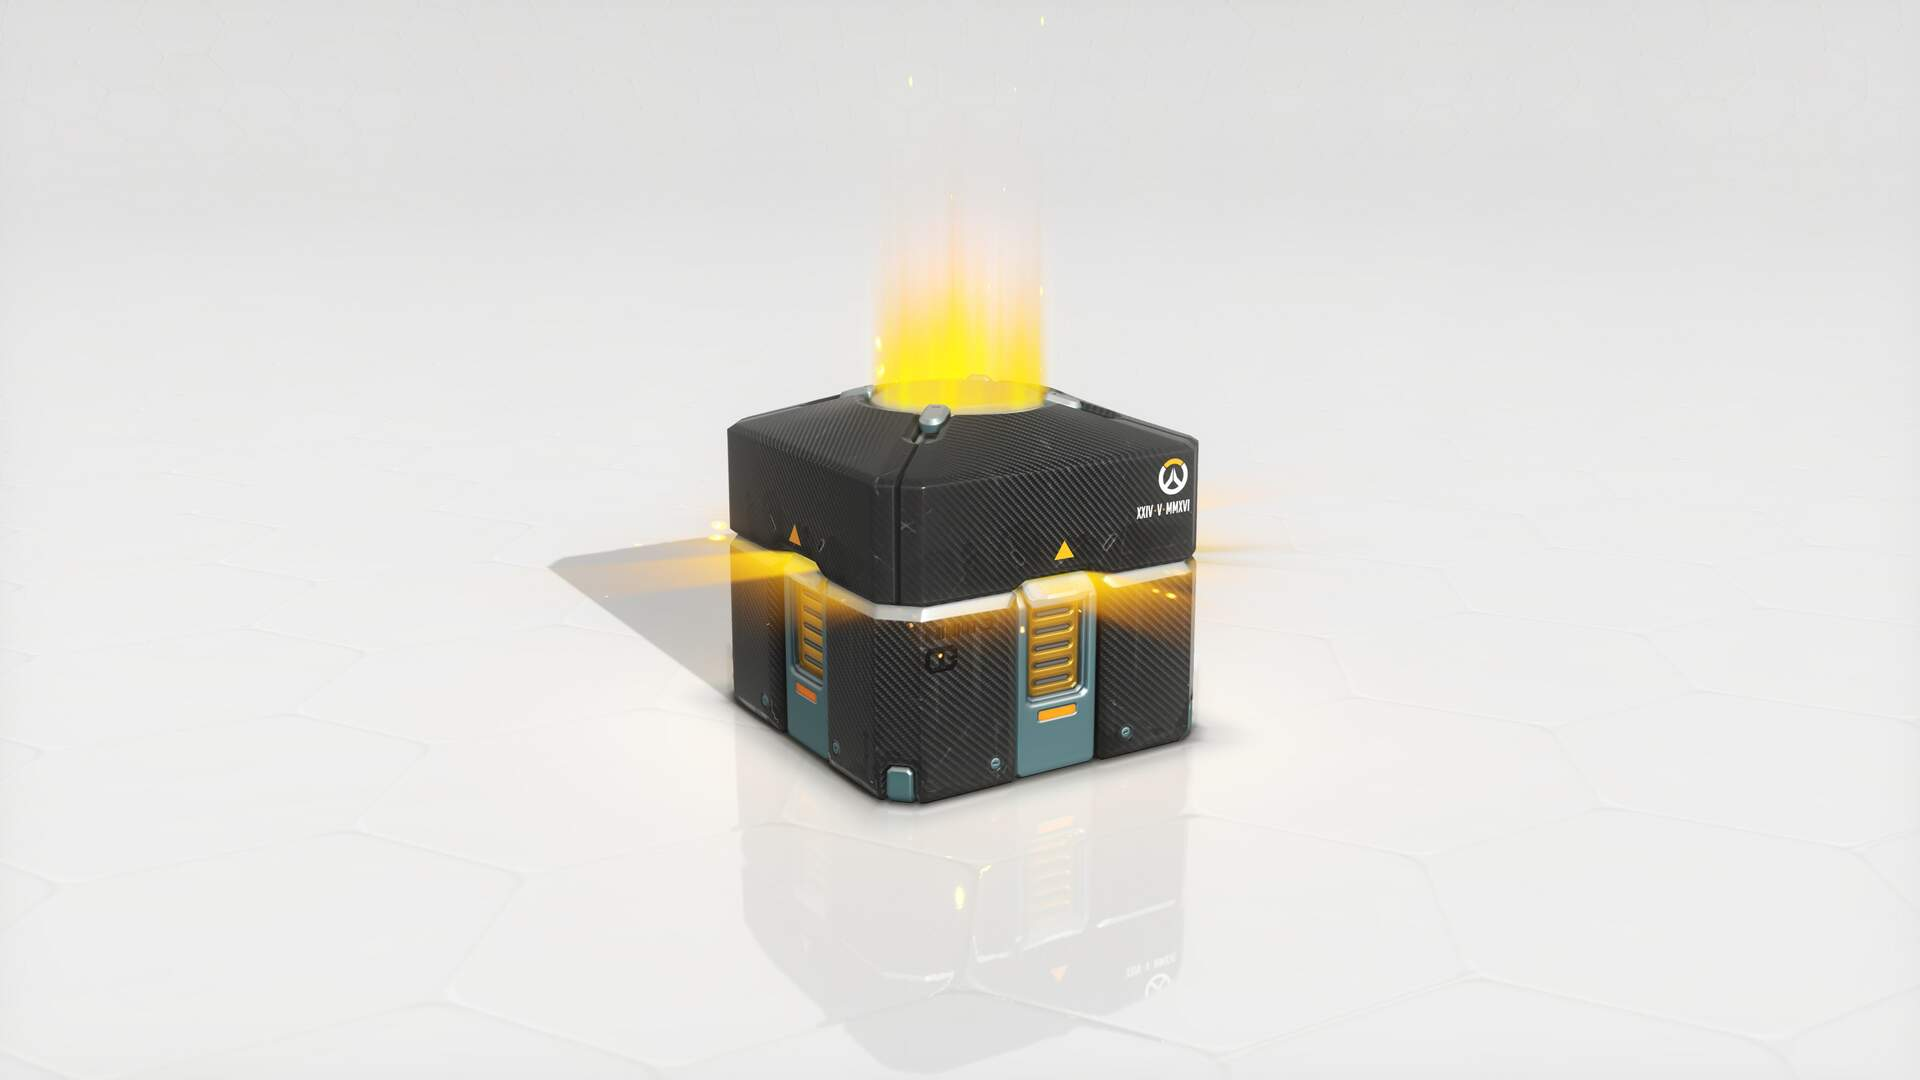 Overwatch How to Earn Loot Boxes Guide - Emotes, Sprays, Legendary Skins